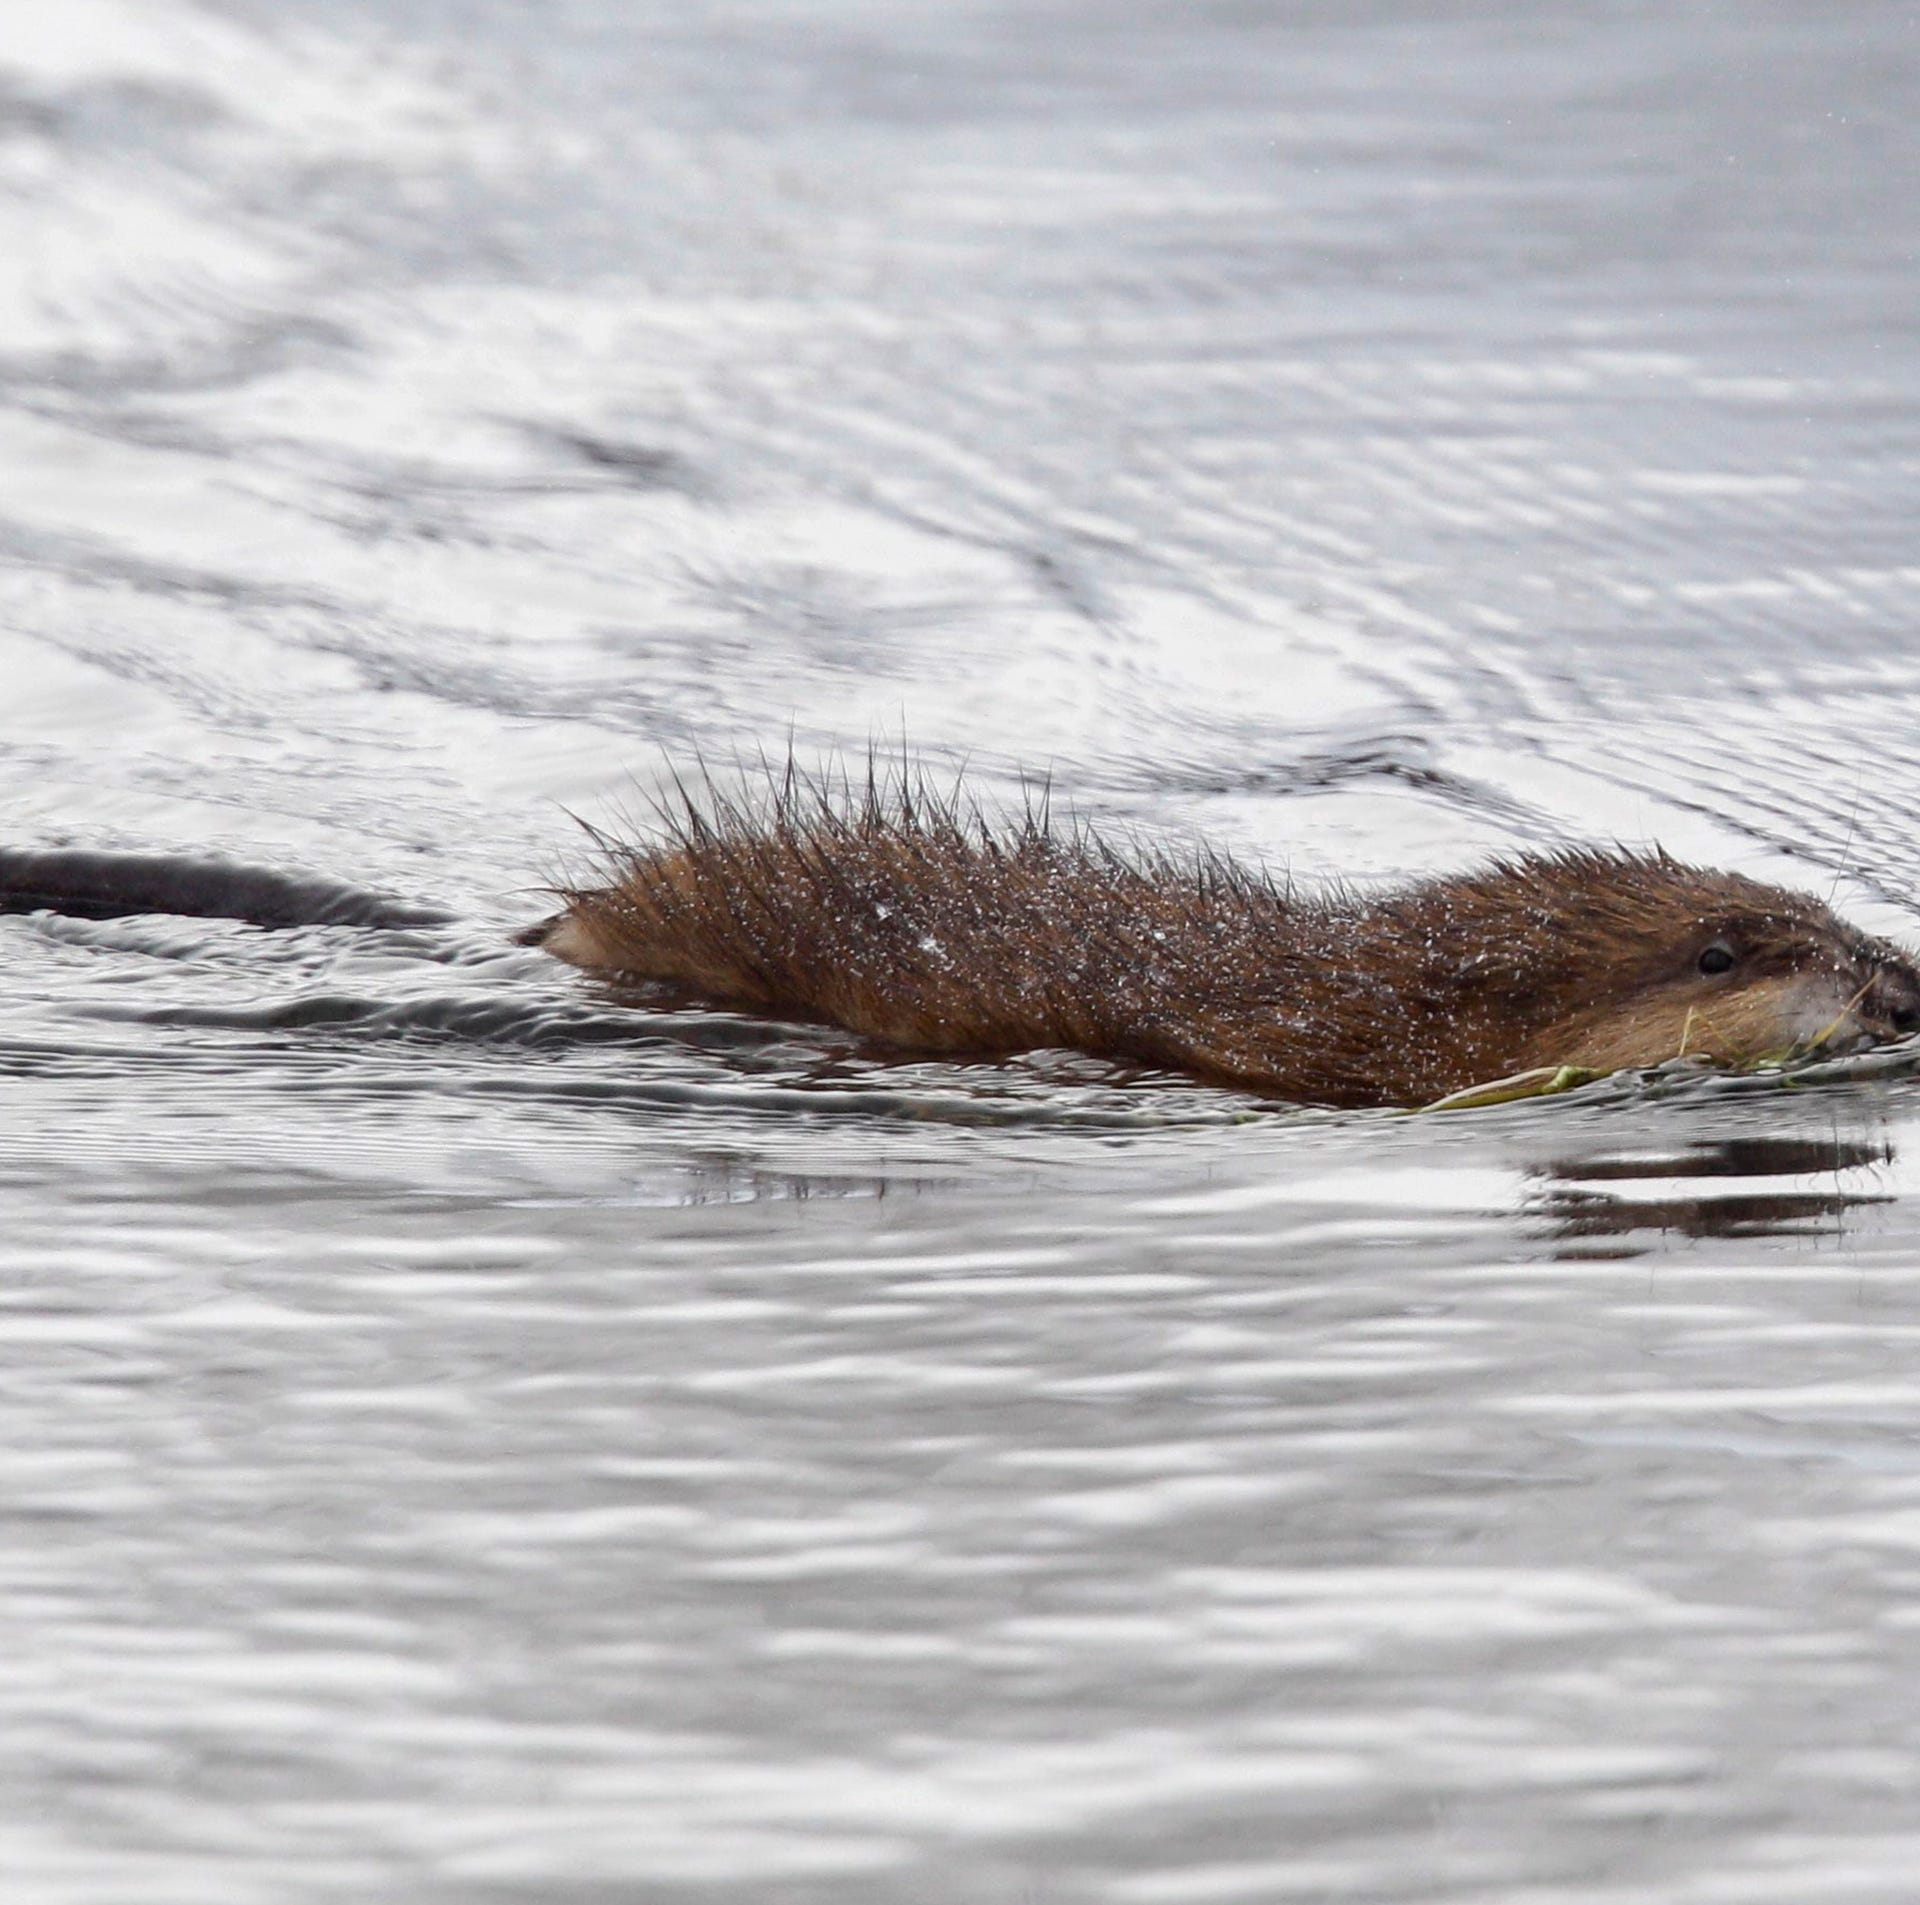 Meat for Lent: Detroit-area Catholics allowed to eat muskrat, if they want to